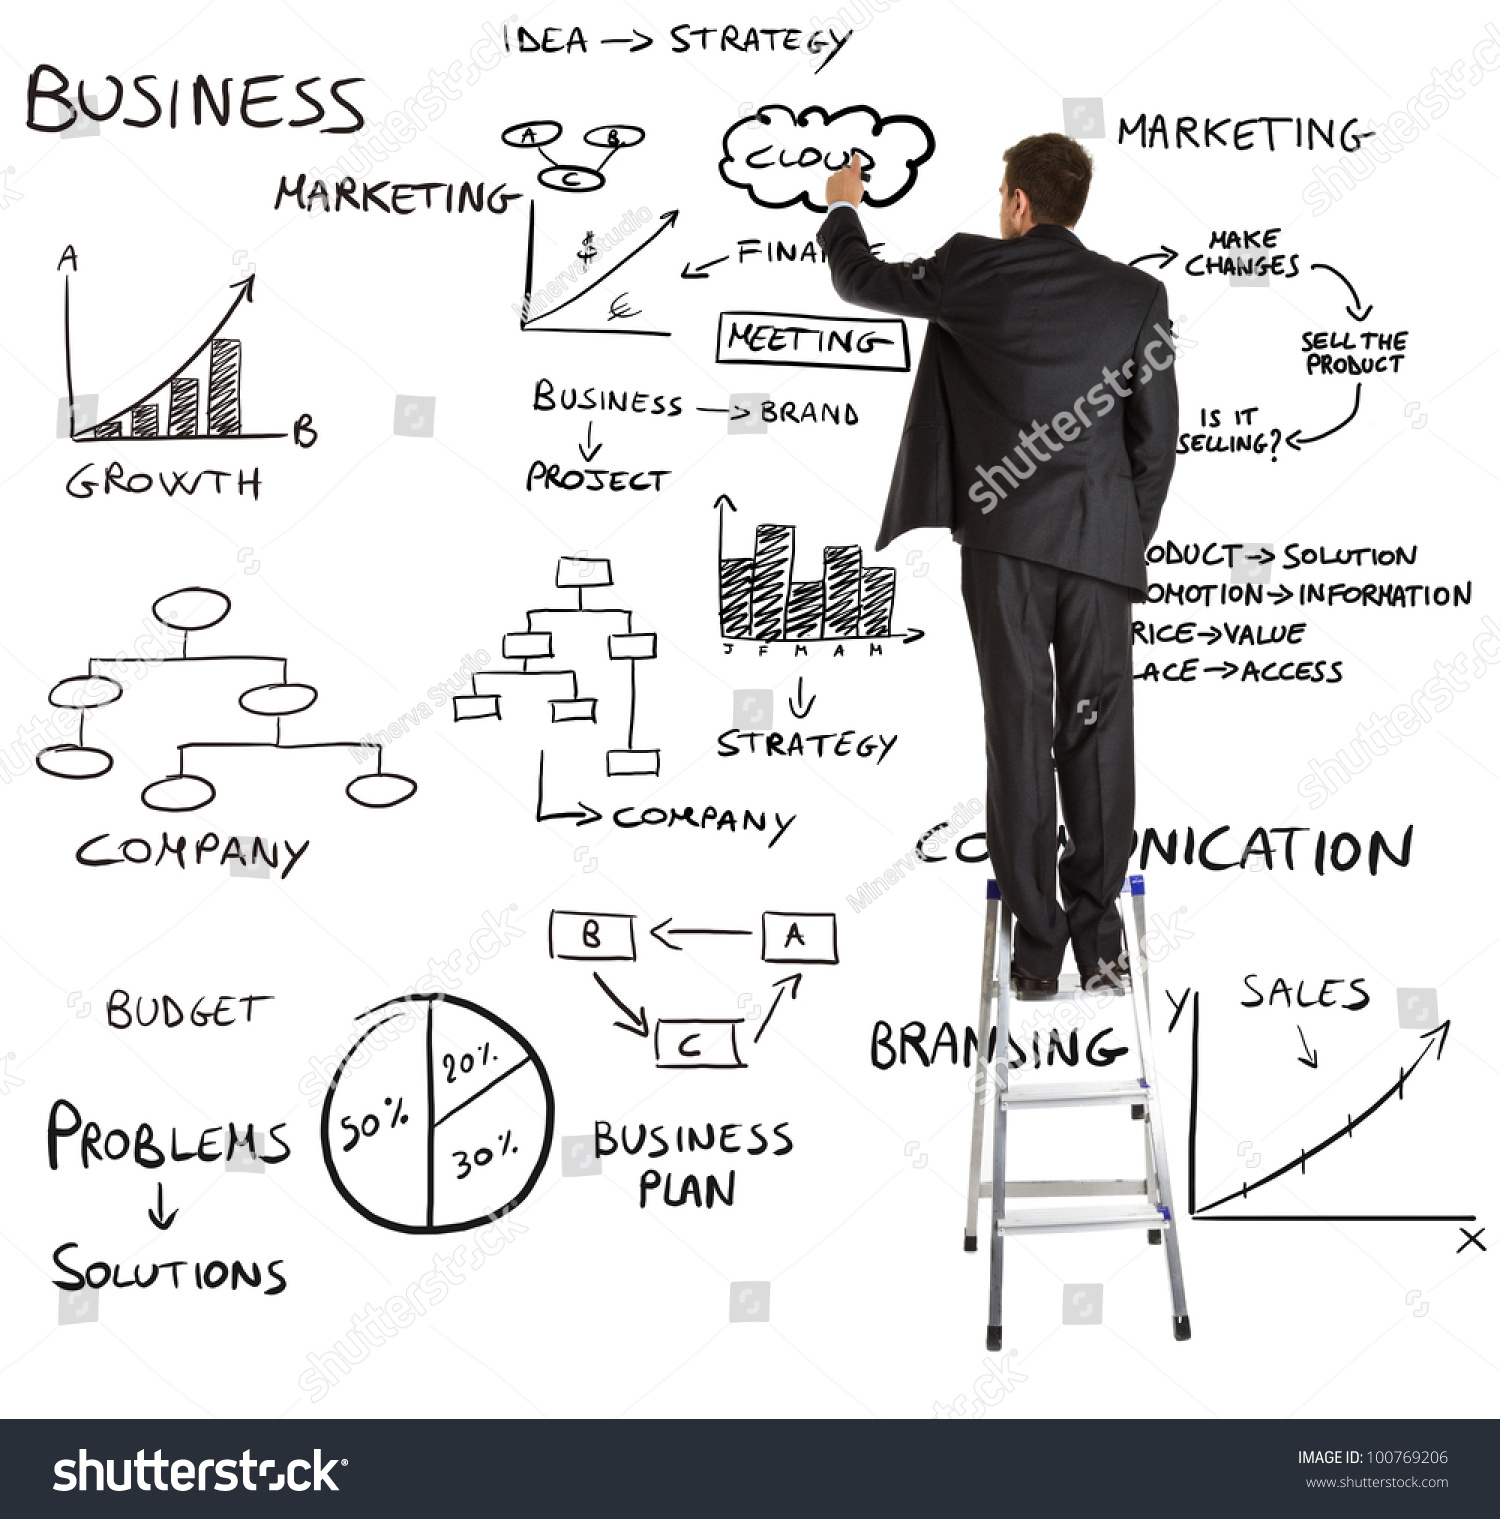 How To Write A Business Plan Part The Marketing Plan Bytestart Business  Plan Writing Service